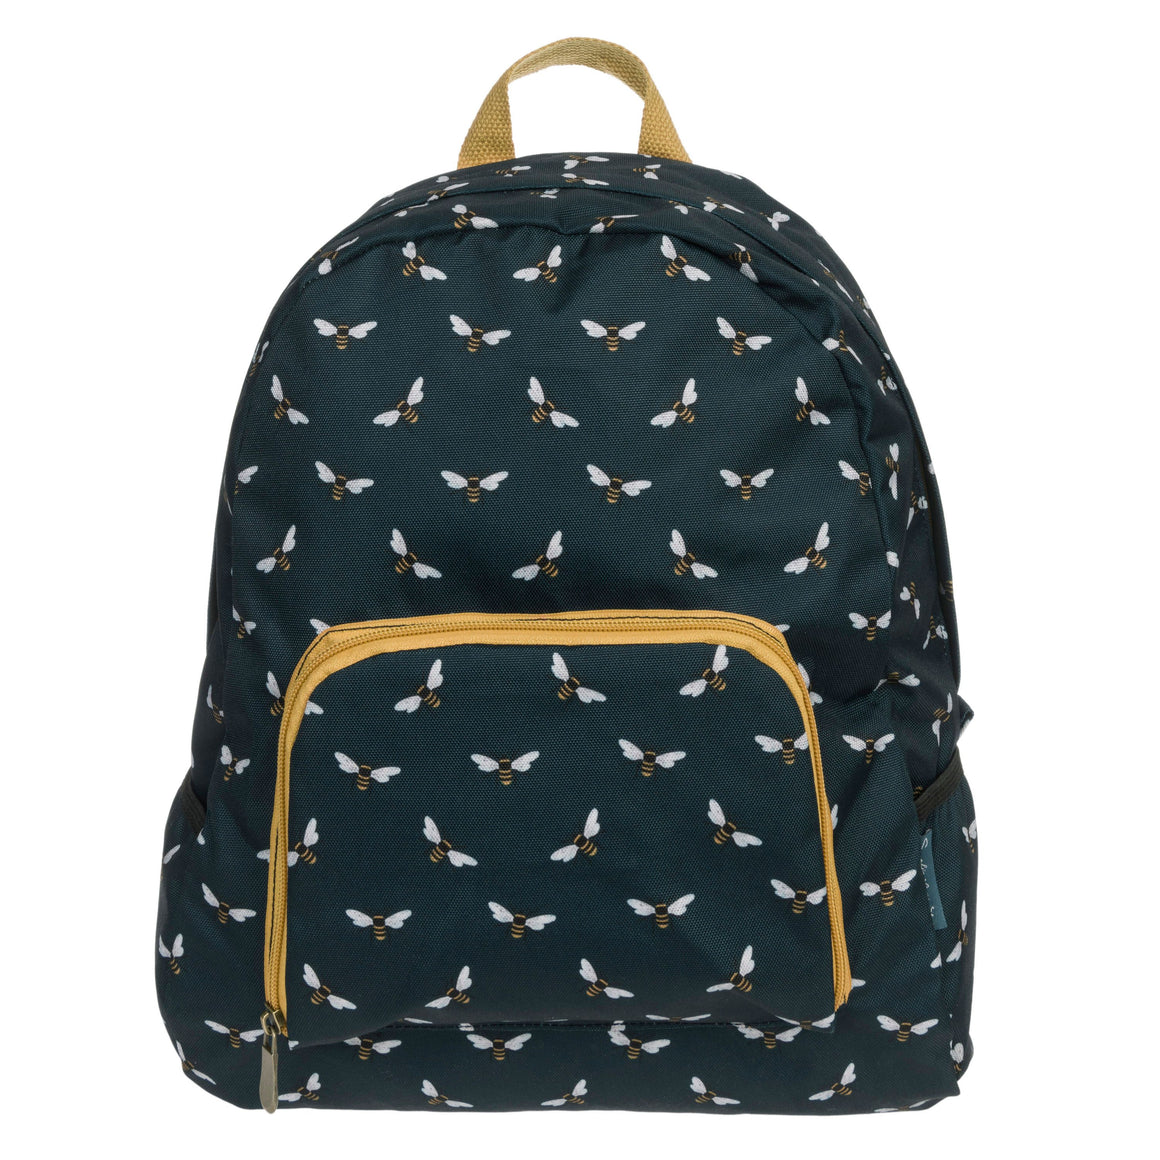 sophie allport folding bee rucksack navy and mustard piping